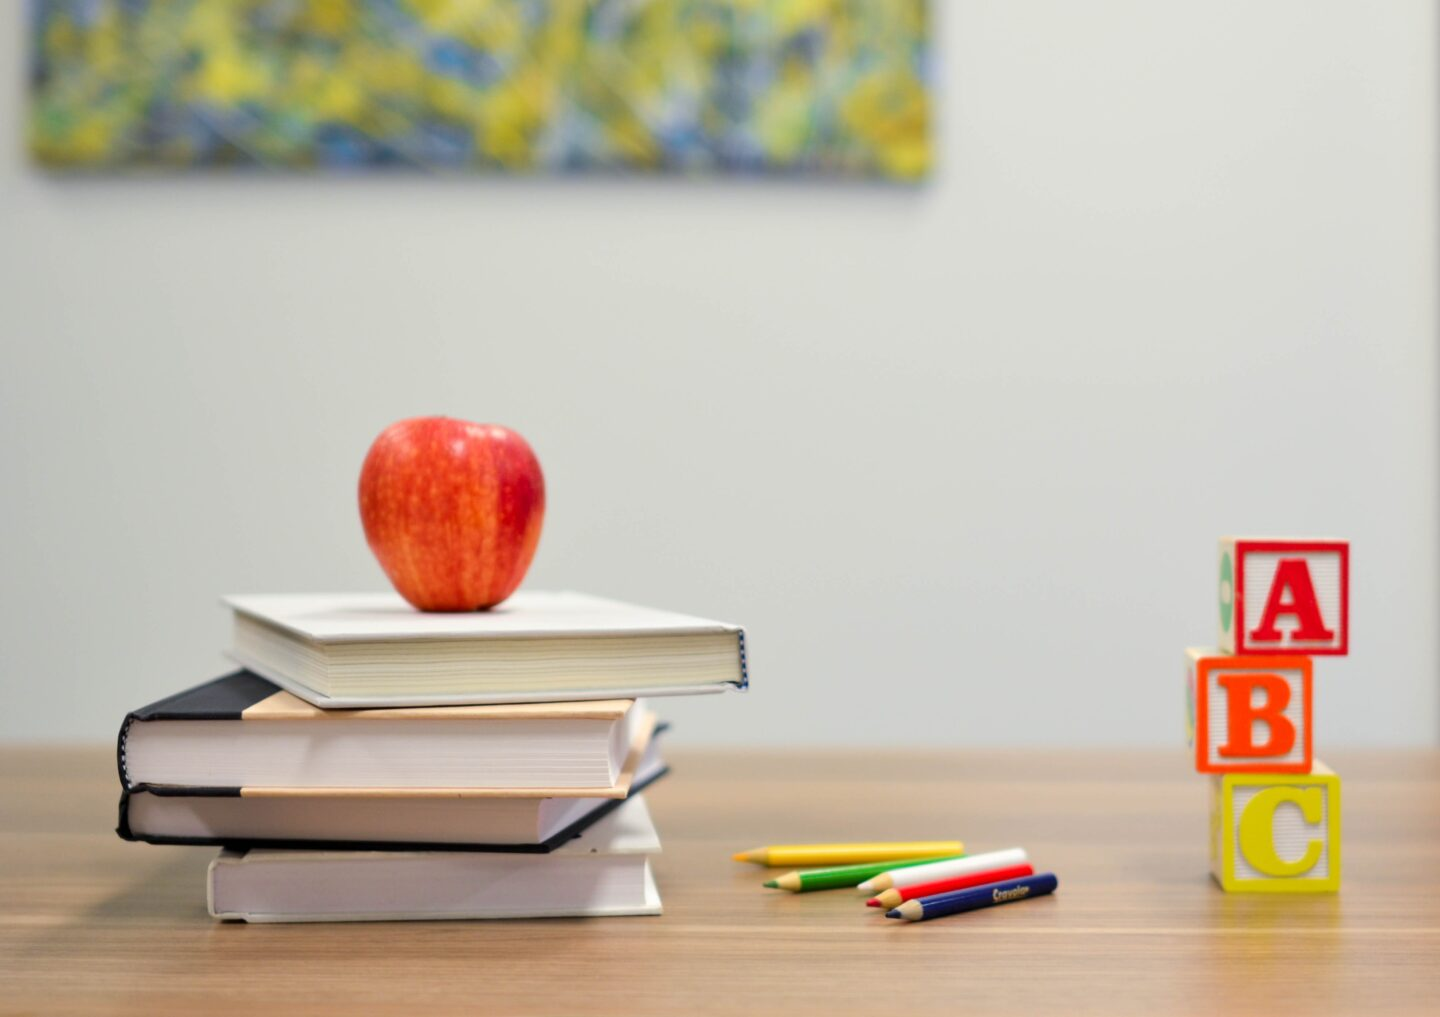 A stack of books with a red apple on top is on desk that symbolizes learning and teaching